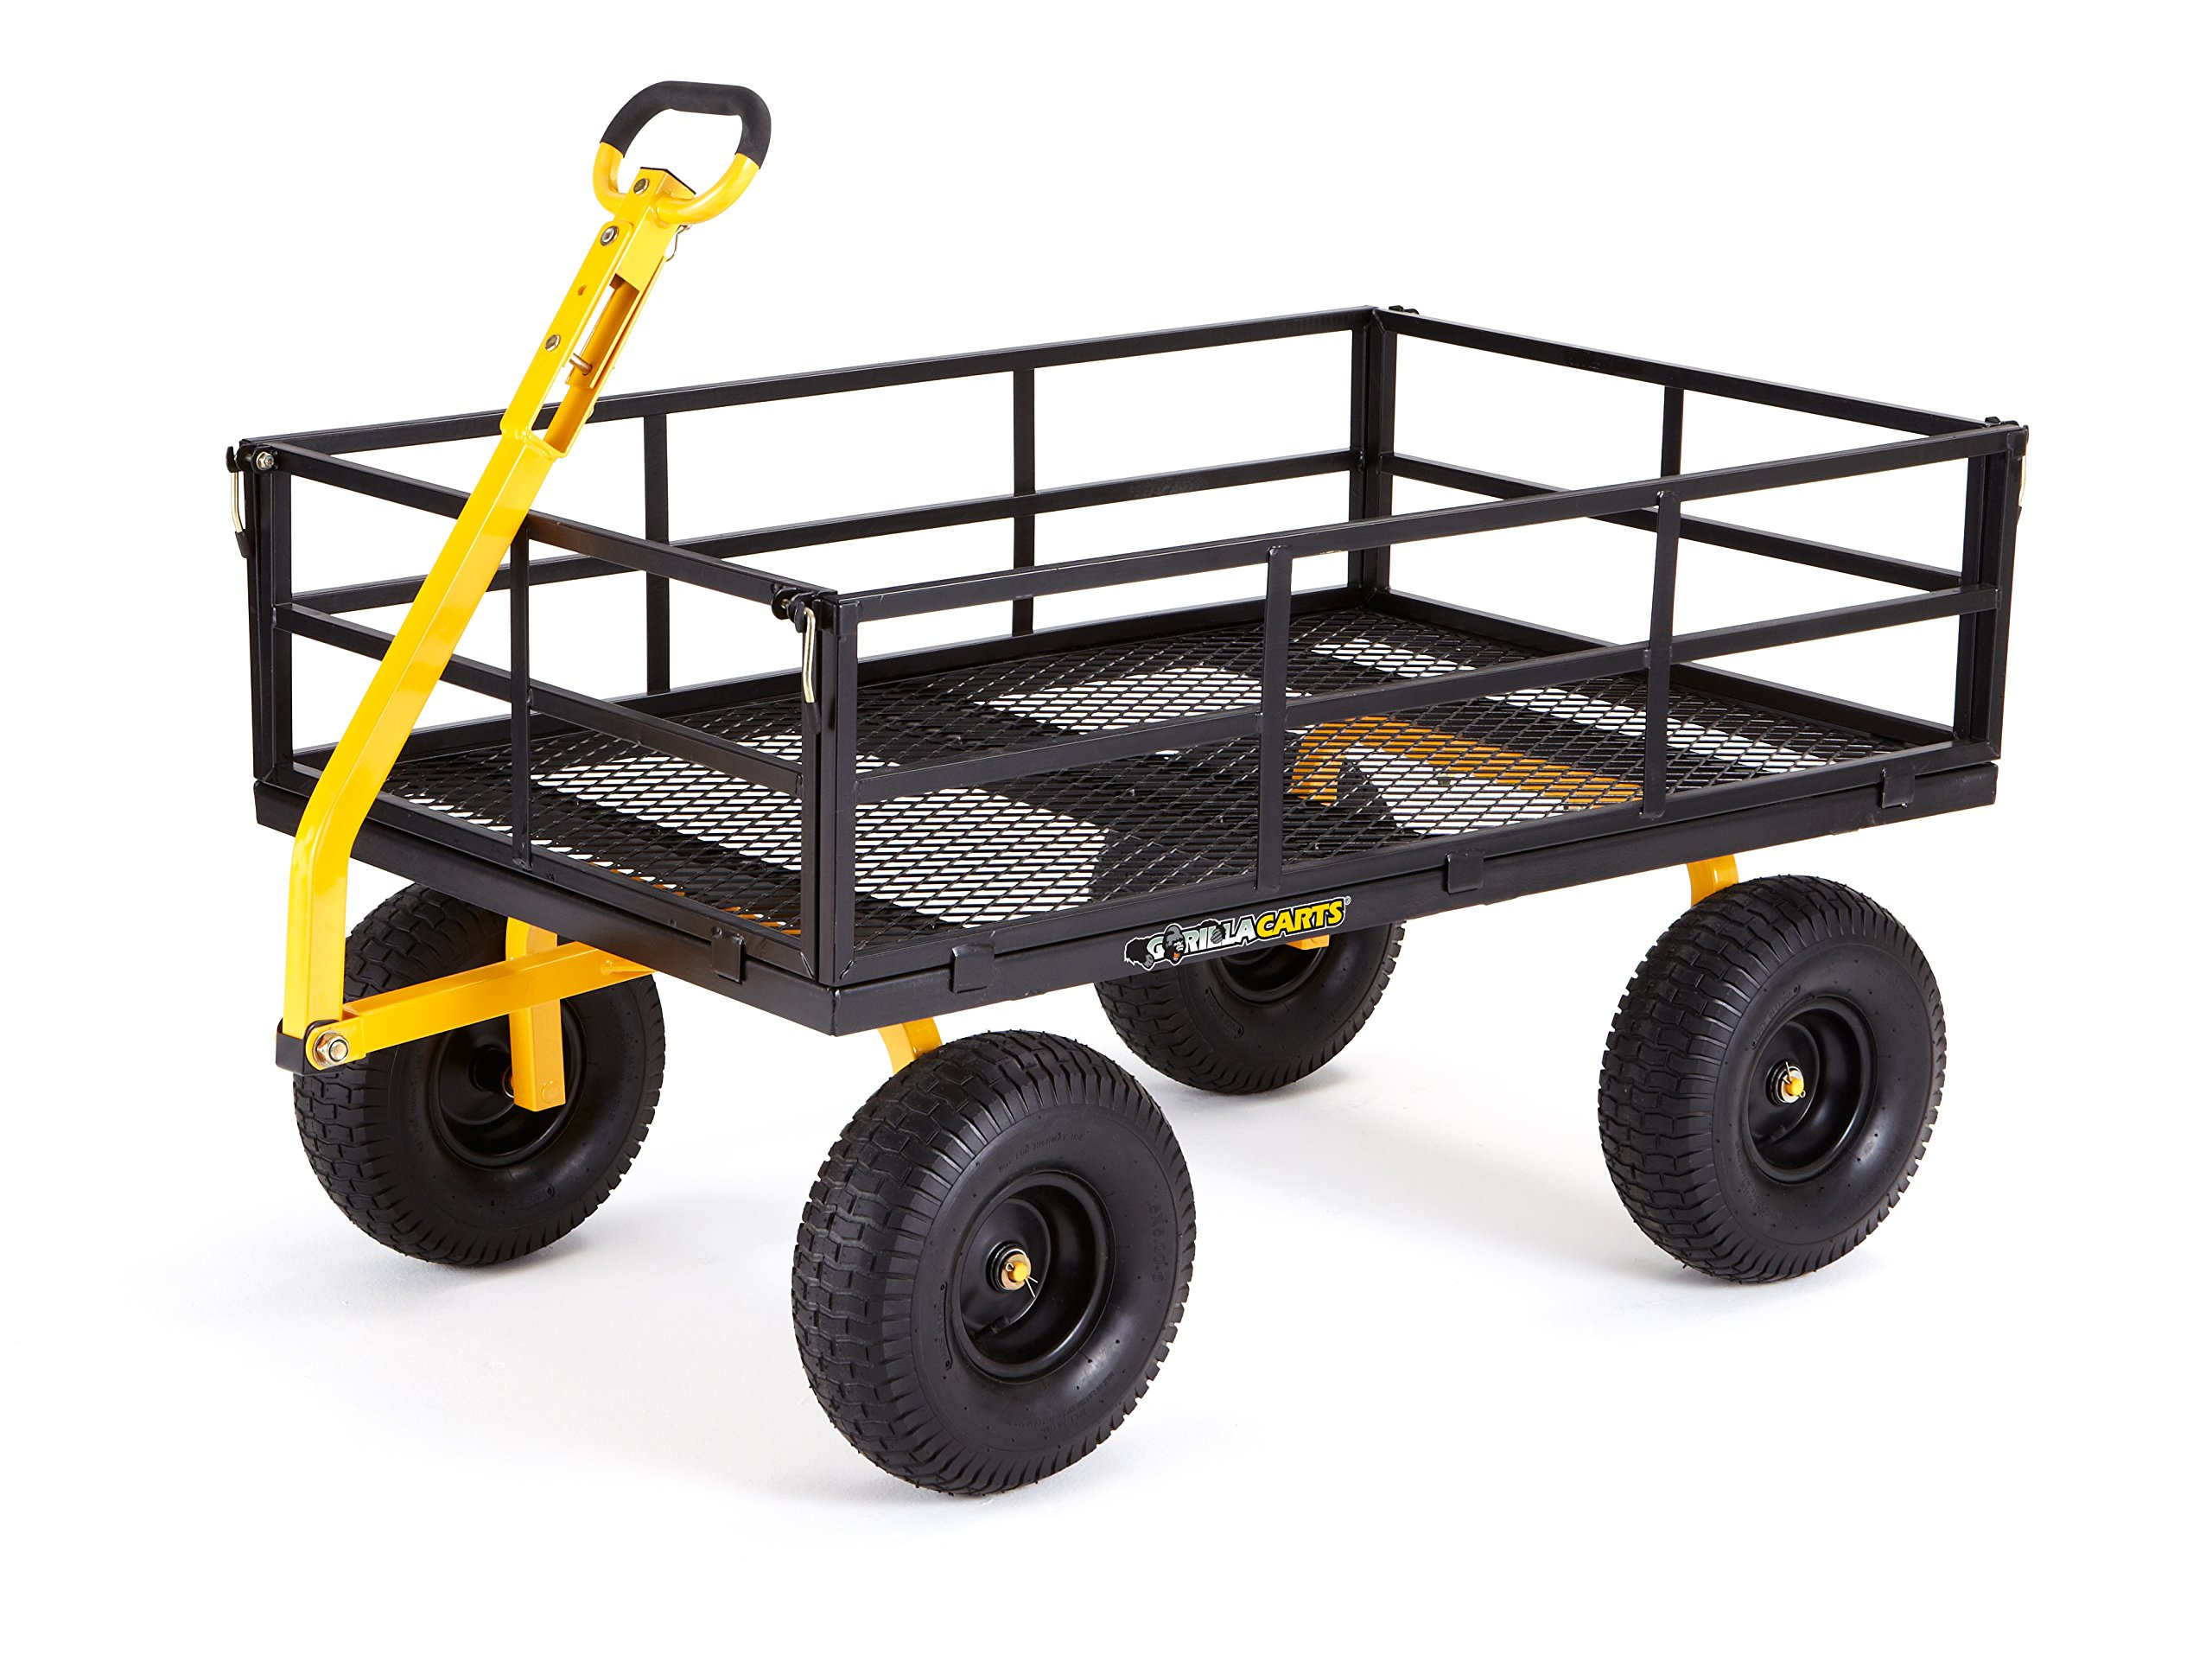 Gorilla Carts Heavy-Duty Steel Utility Cart with Removable Sides and 15'' Tires with 1400 lb Capacity, Black by Gorilla Carts